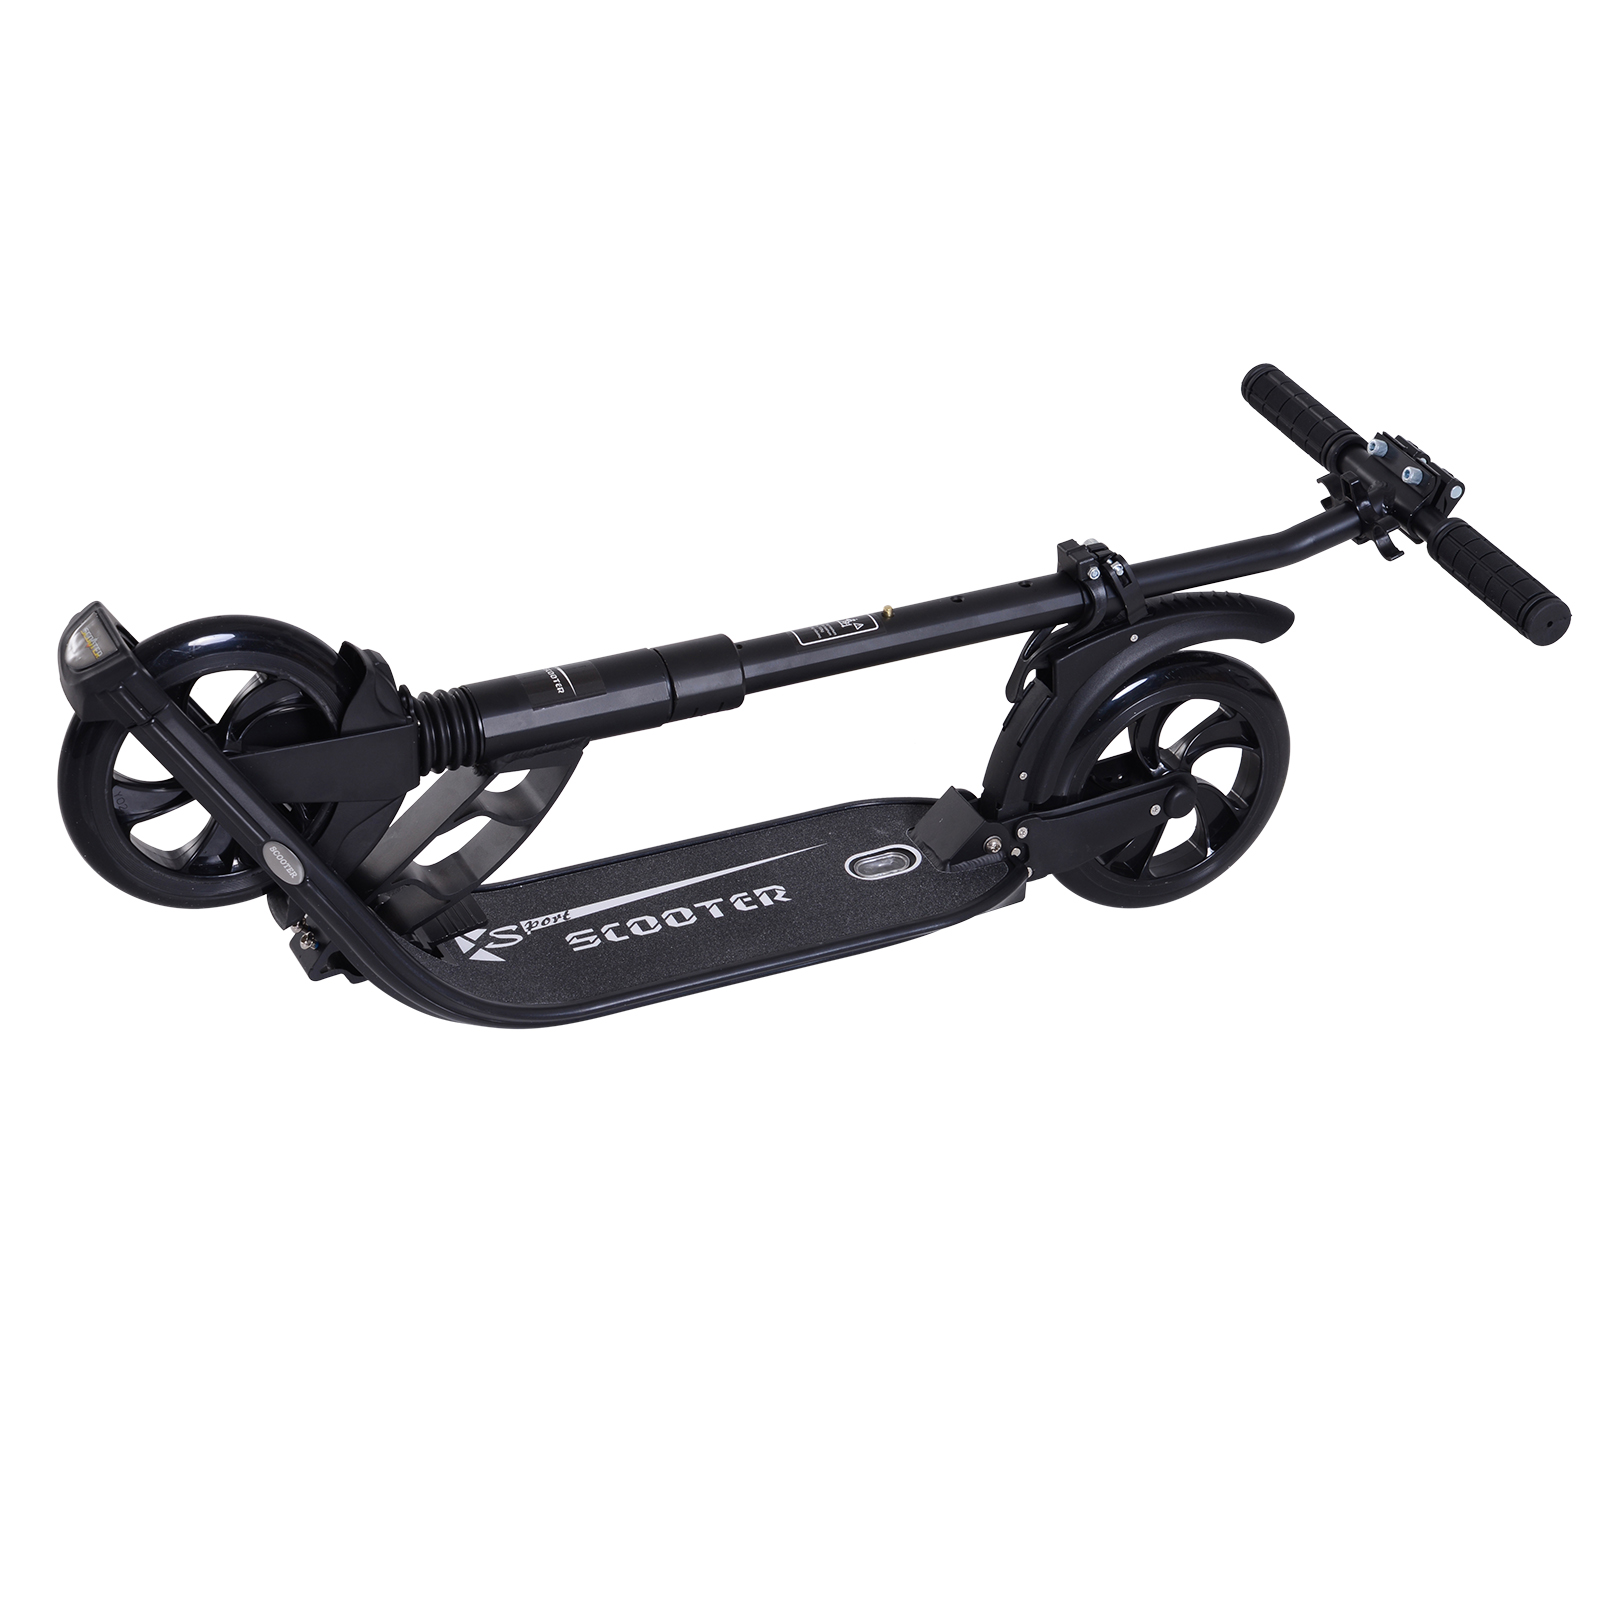 Teens-Adult-Folding-Electric-Scooter-Teenager-Rider-With-Brakes-and-Kickstand miniature 17